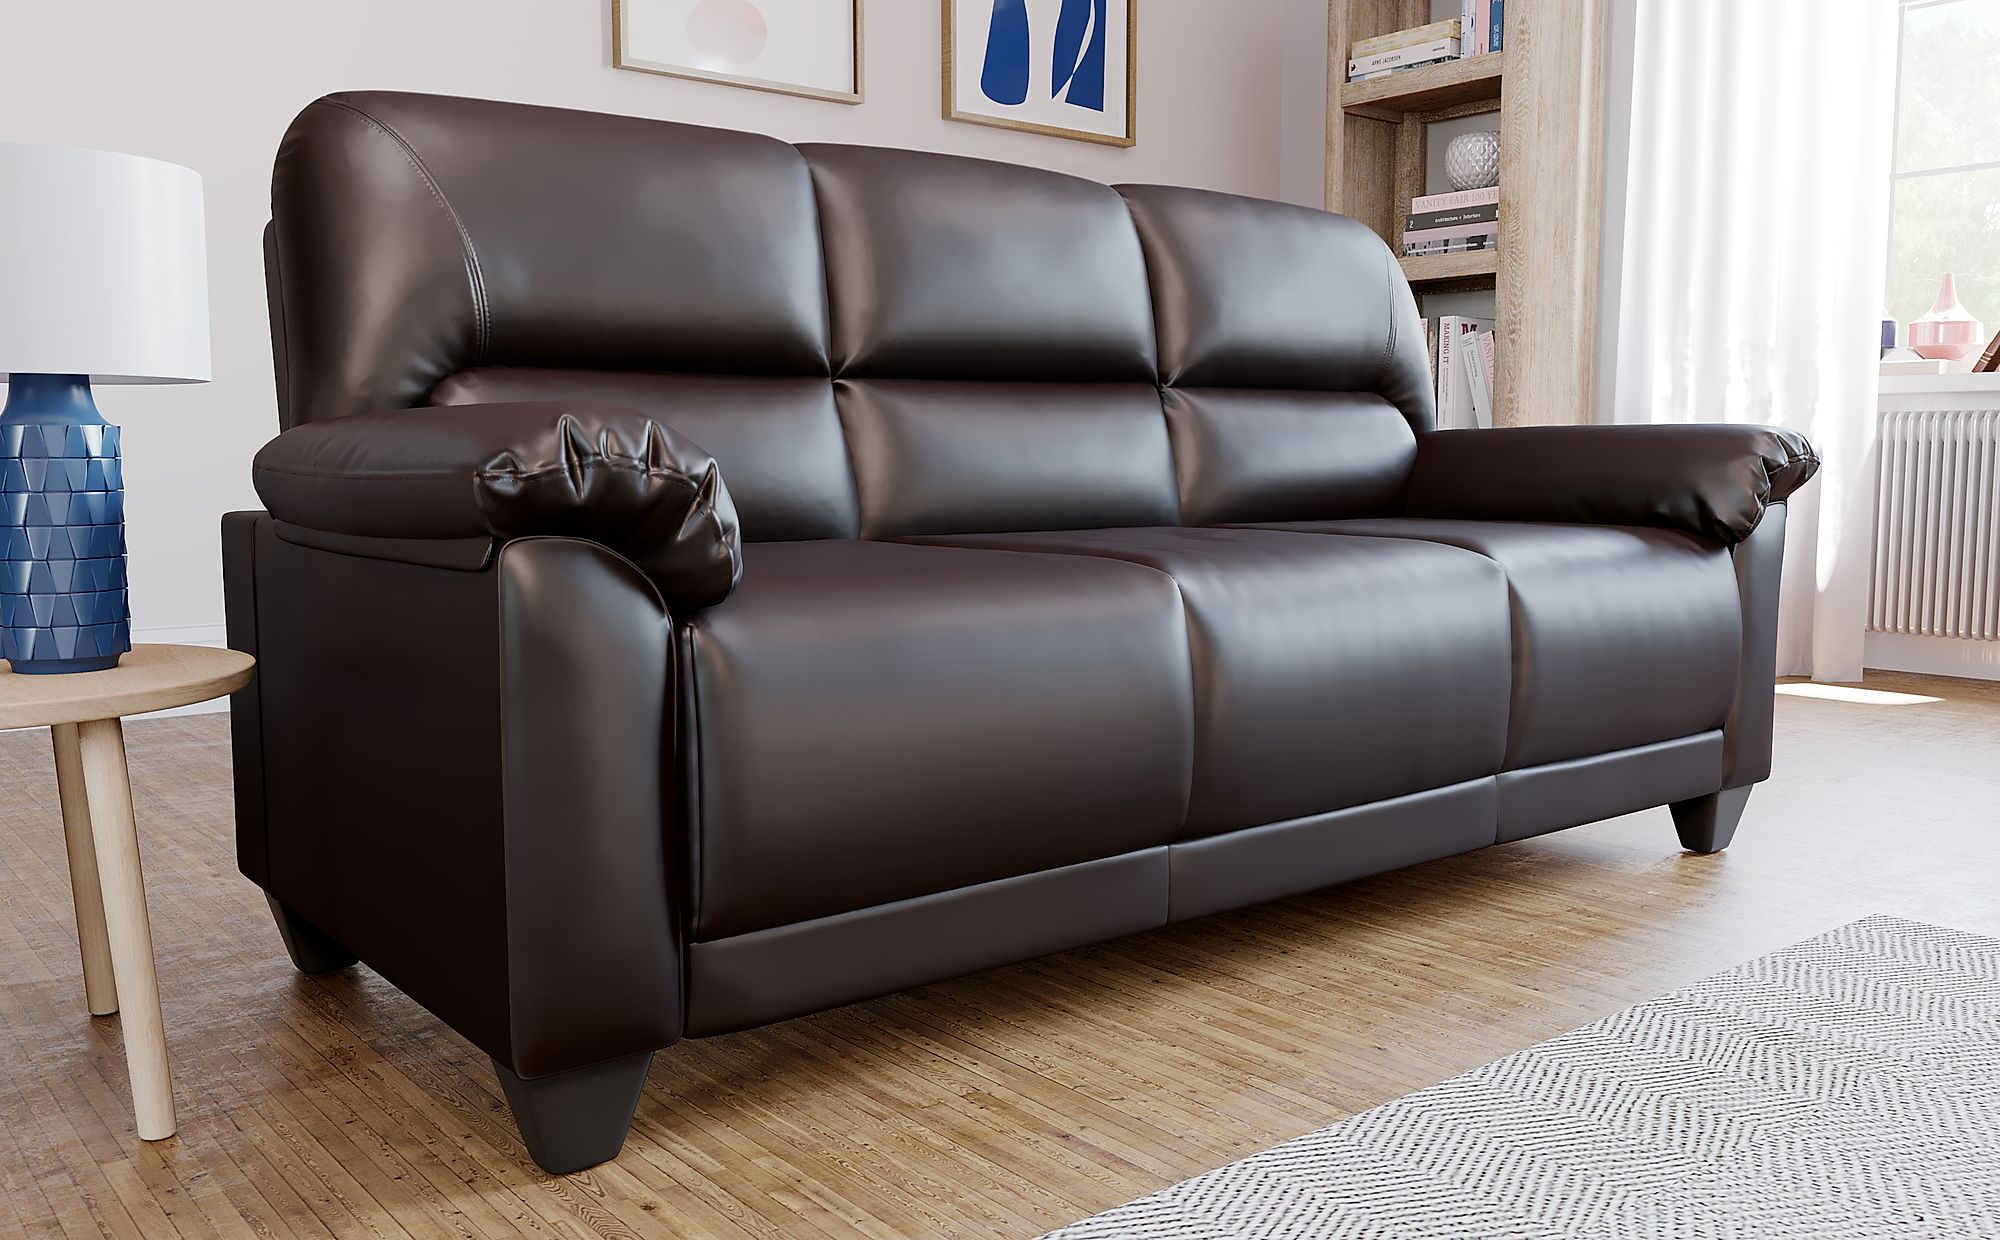 Kenton Small Brown Leather 3 Seater Sofa Furniture Choice